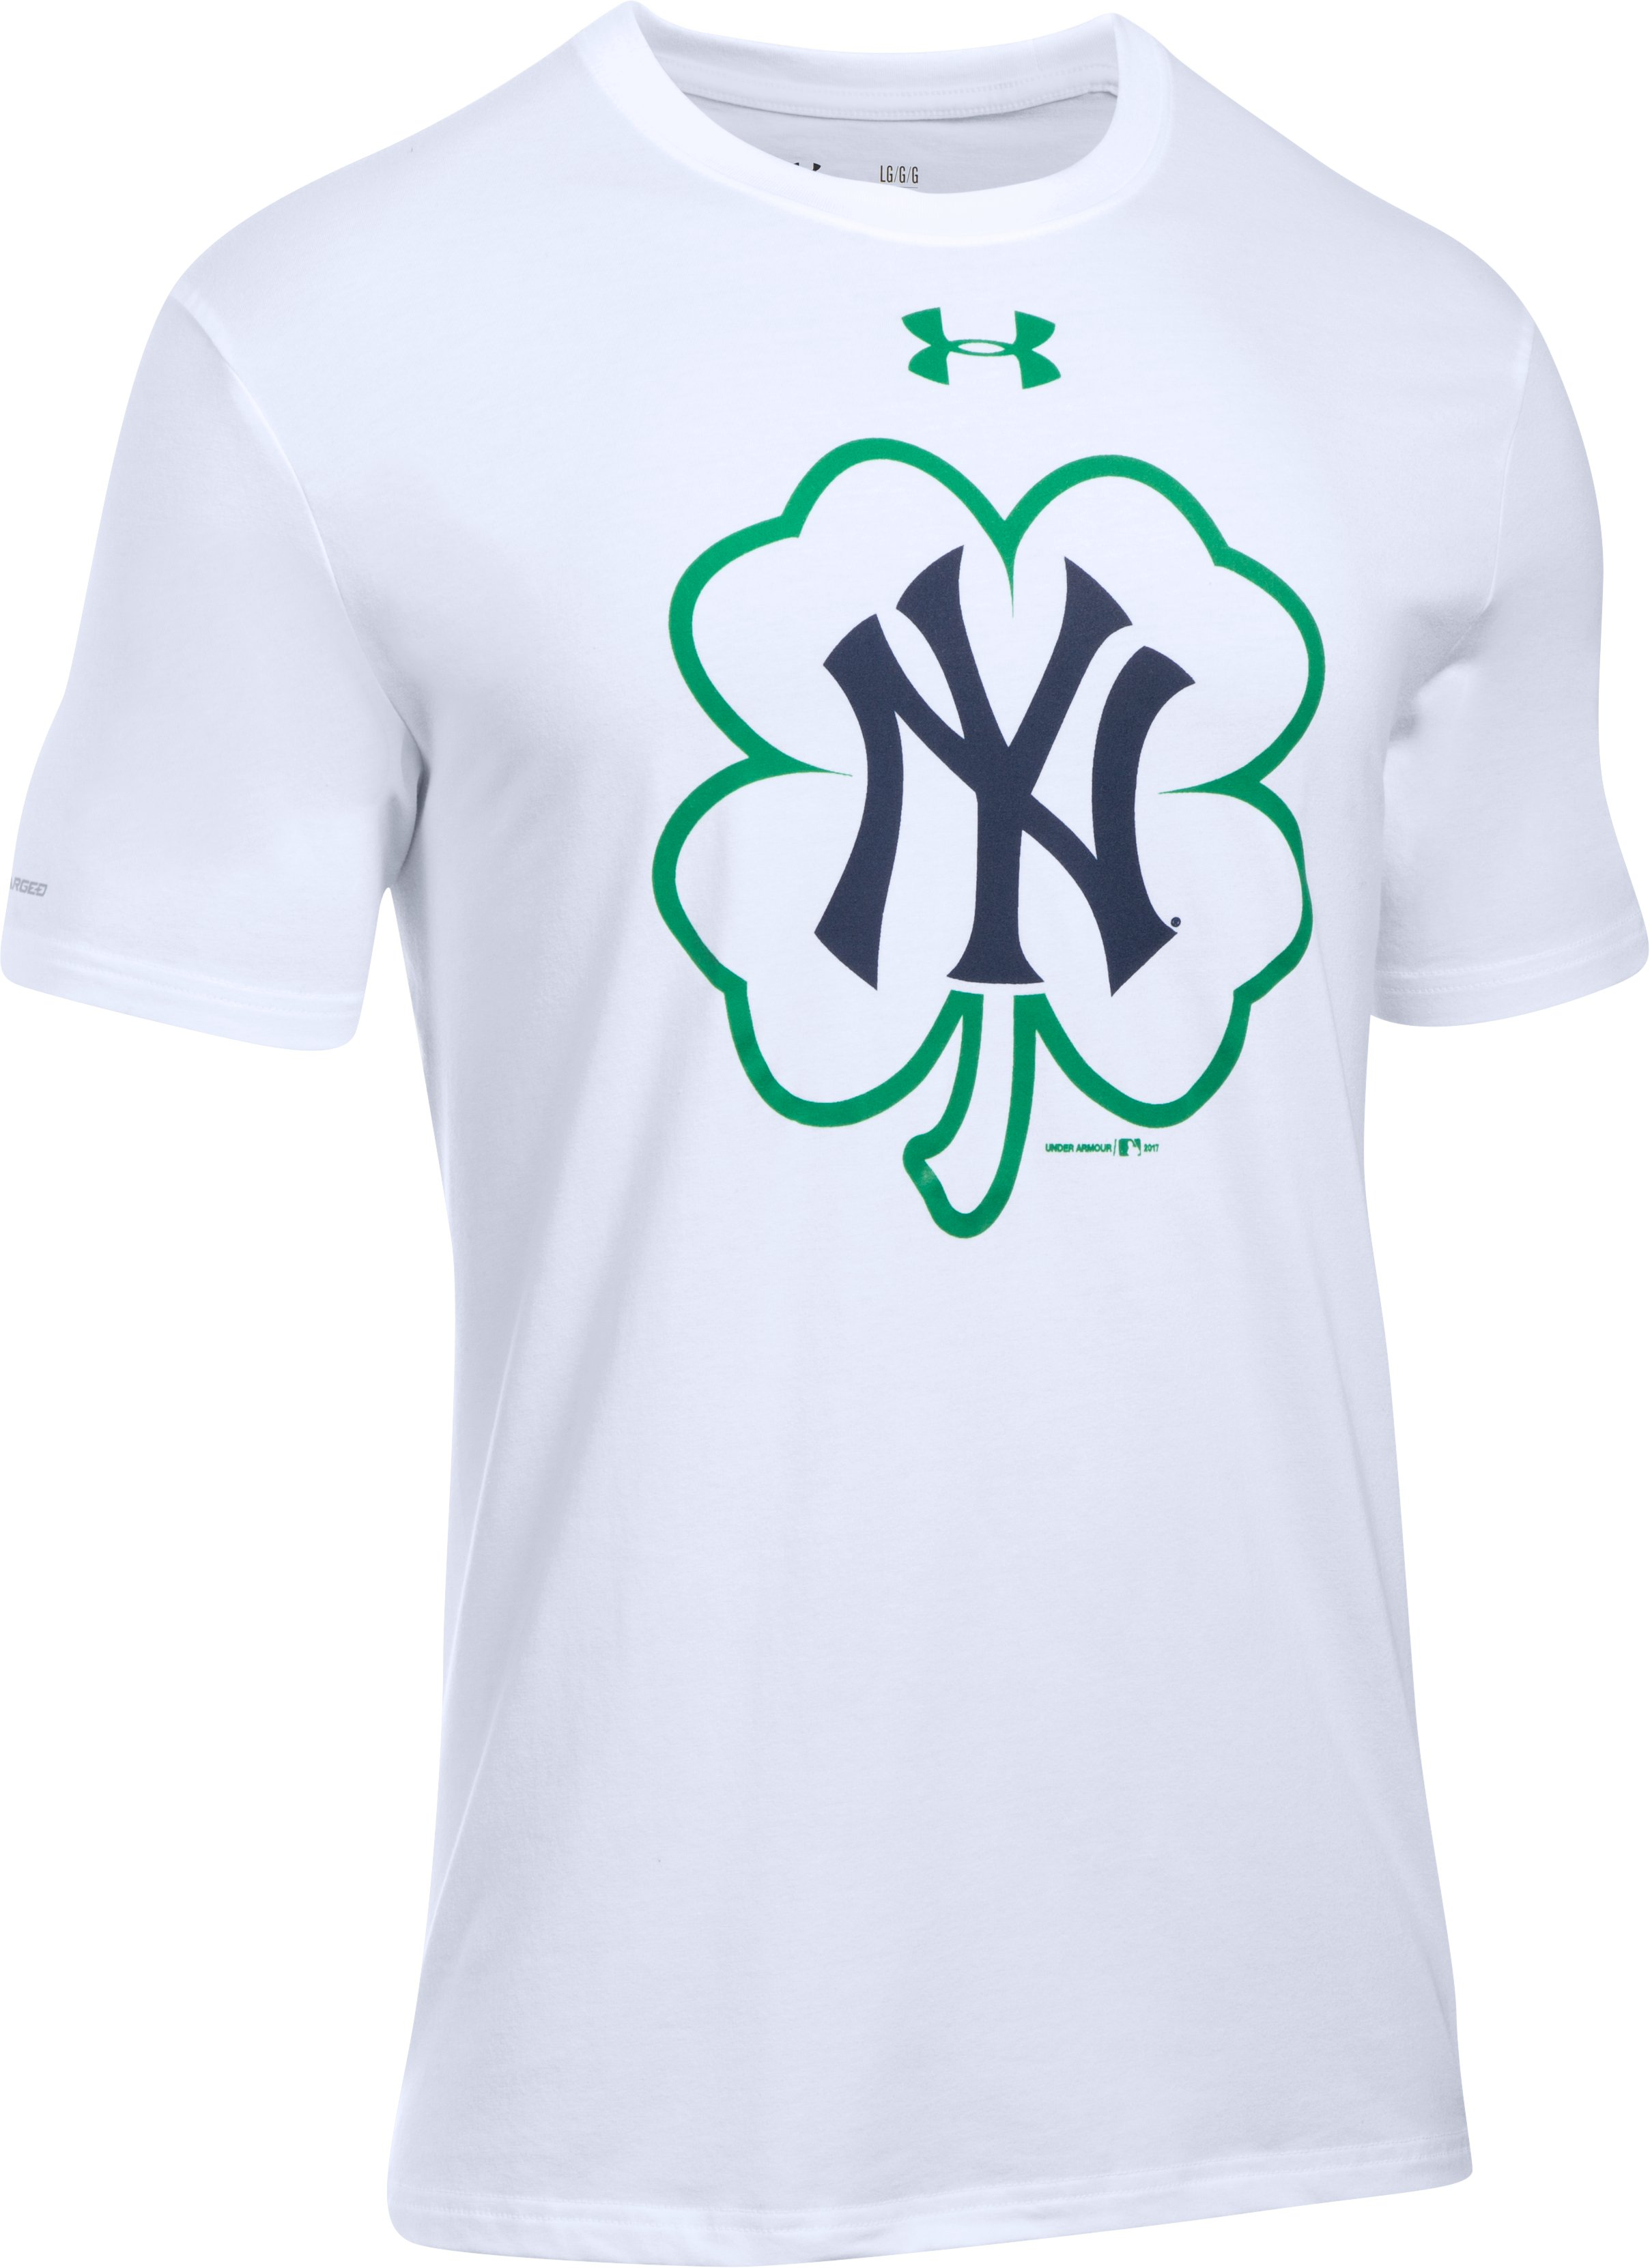 Men's New York Yankees St Patty T-Shirt, White, undefined